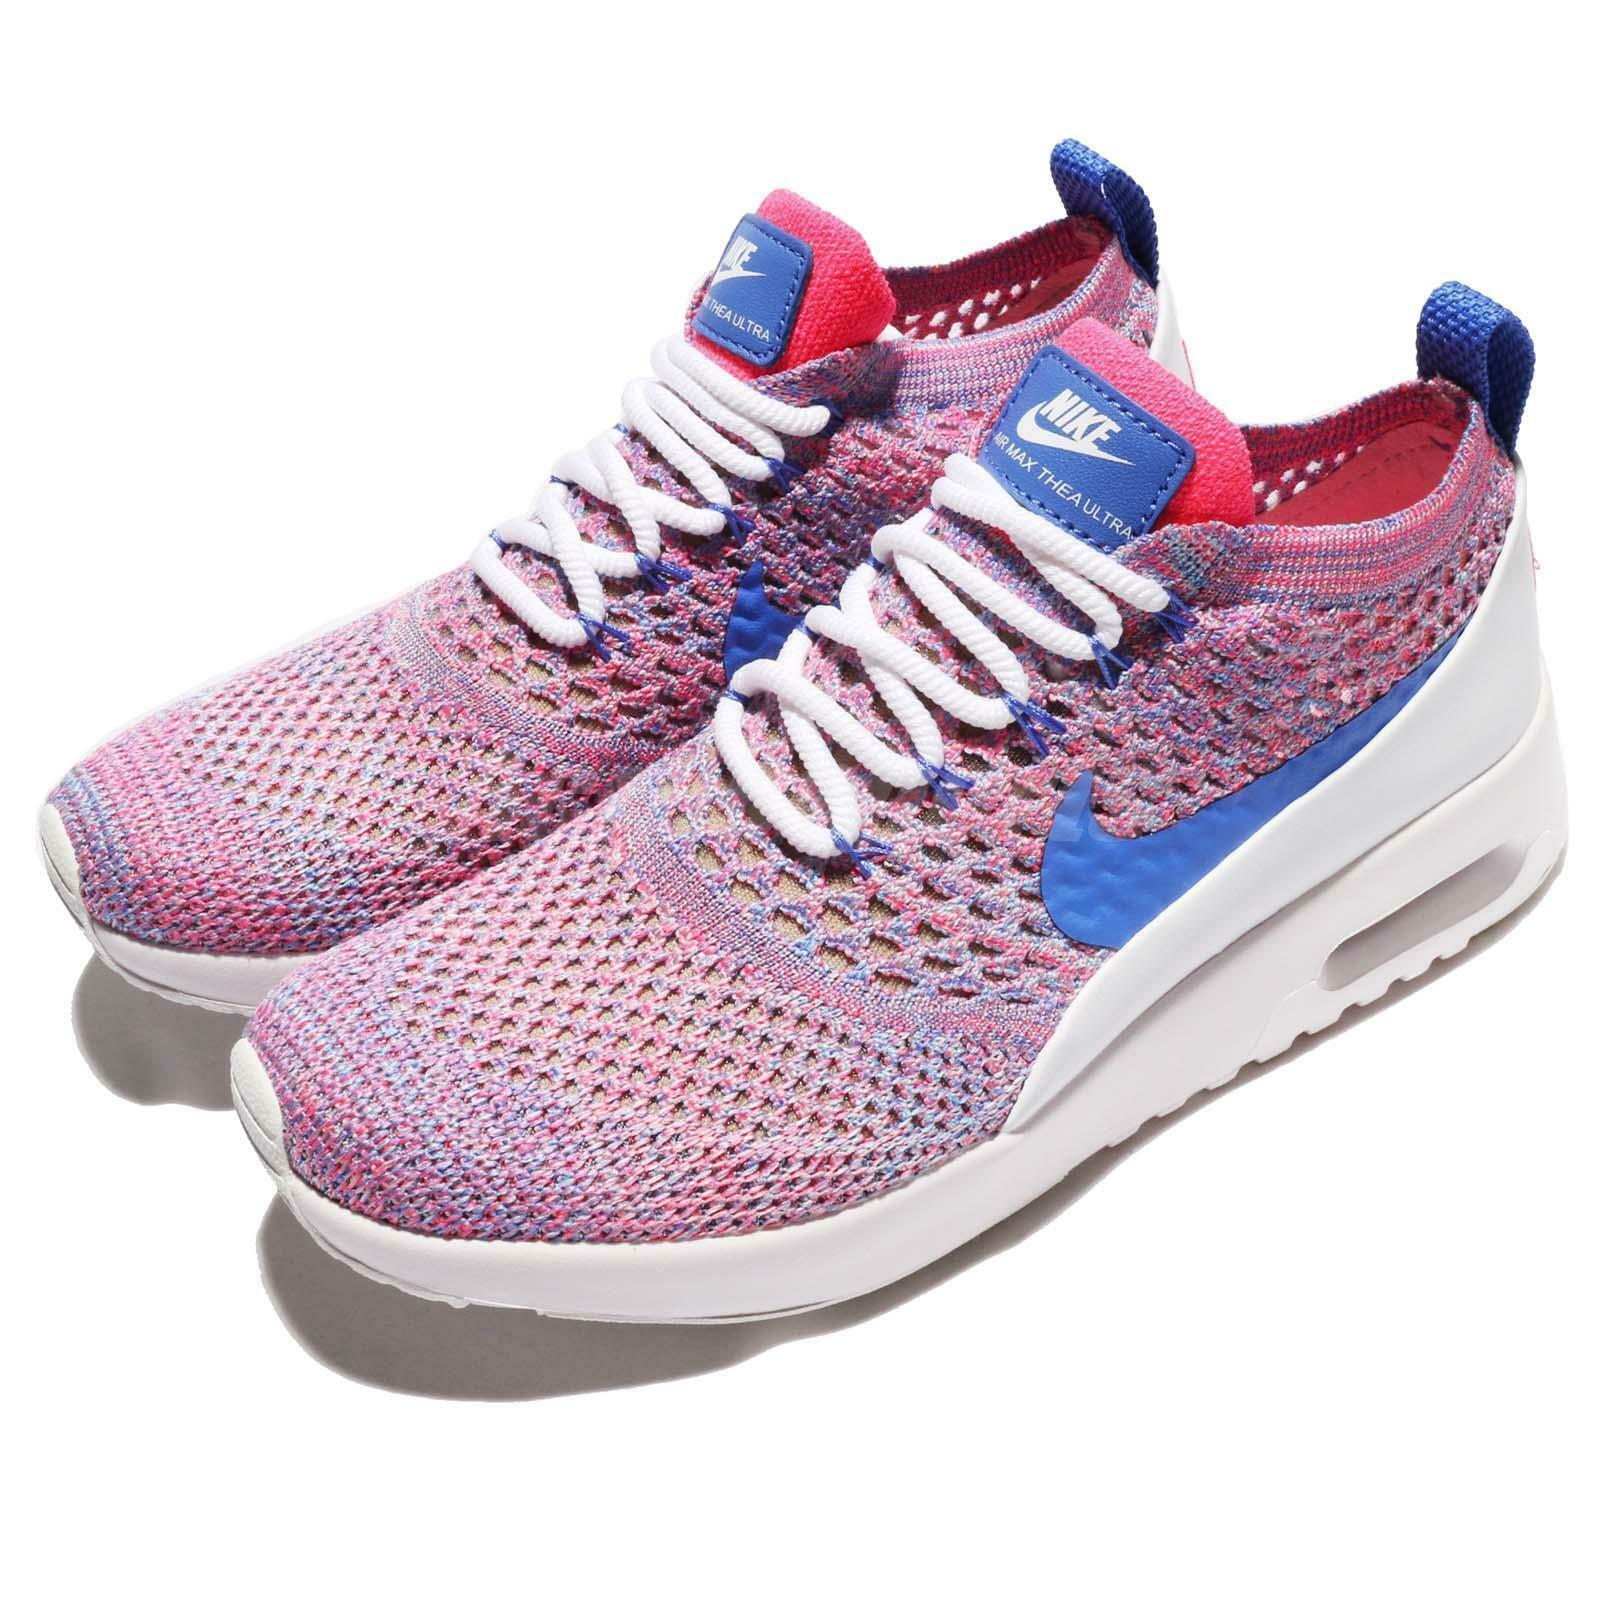 Size 10 - Nike Air Max Thea Ultra Flyknit Medium Blue/Racer Pink/White